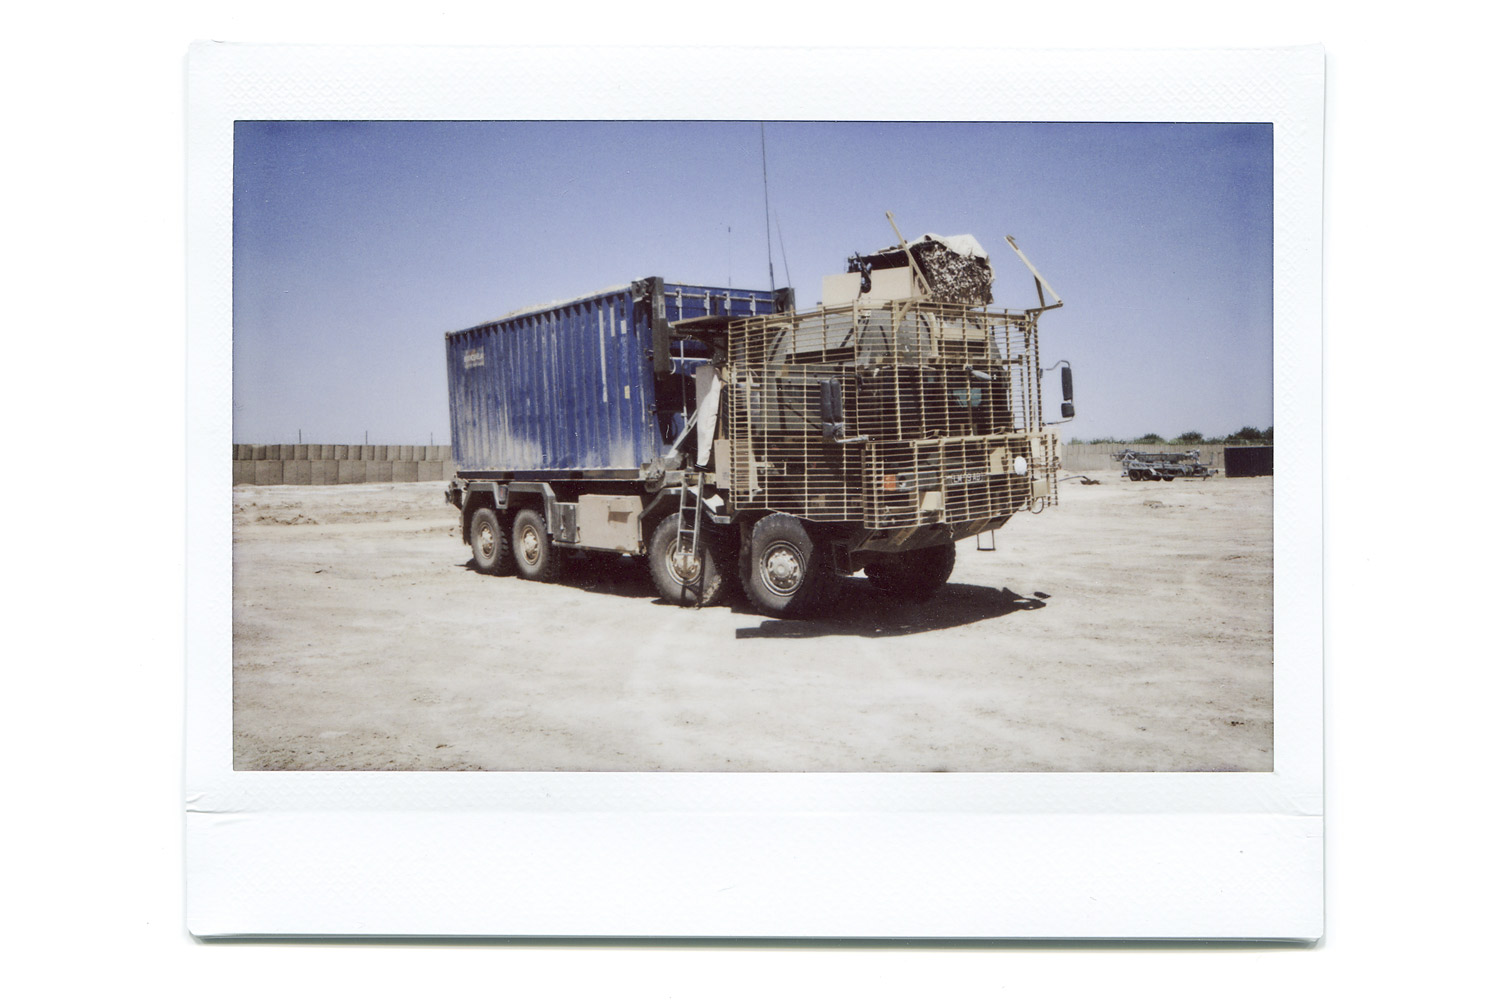 A military container-carrying vehicle.  These vehicles would carry vital supplies to the bases around Helmand. We were responsible for providing medical support should anything go wrong. I liked the colors.